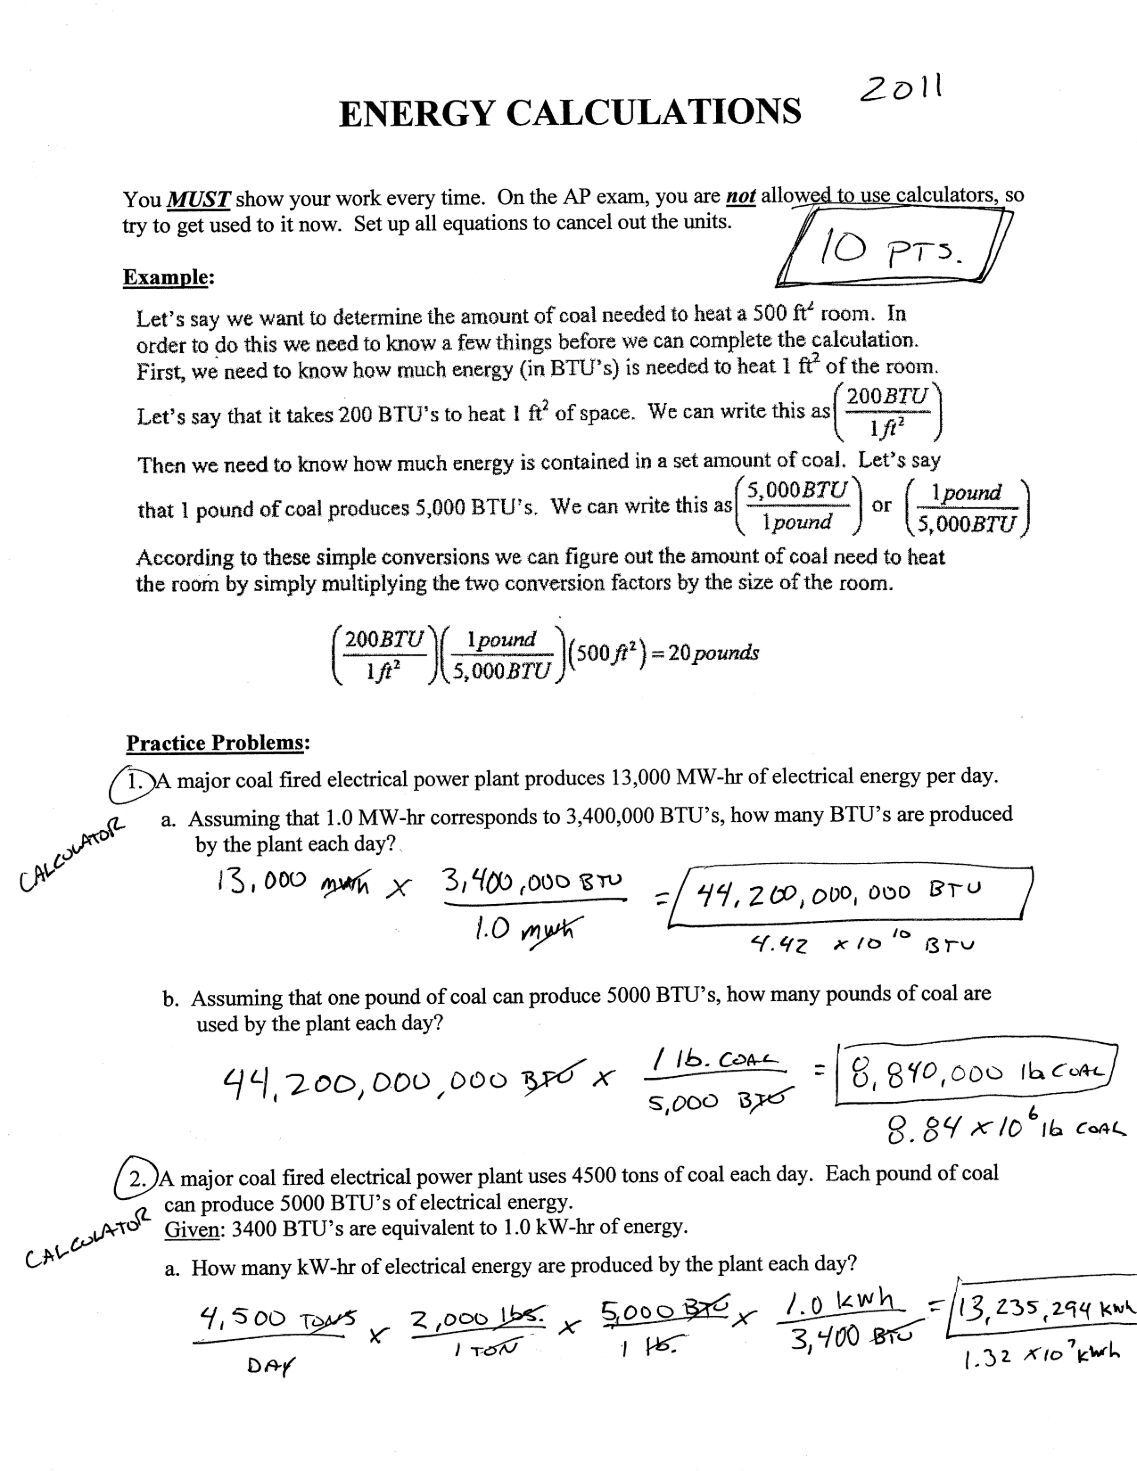 1 free Magazines from KENNEDYAPESWEEBLYCOM – Energy Calculations Worksheet